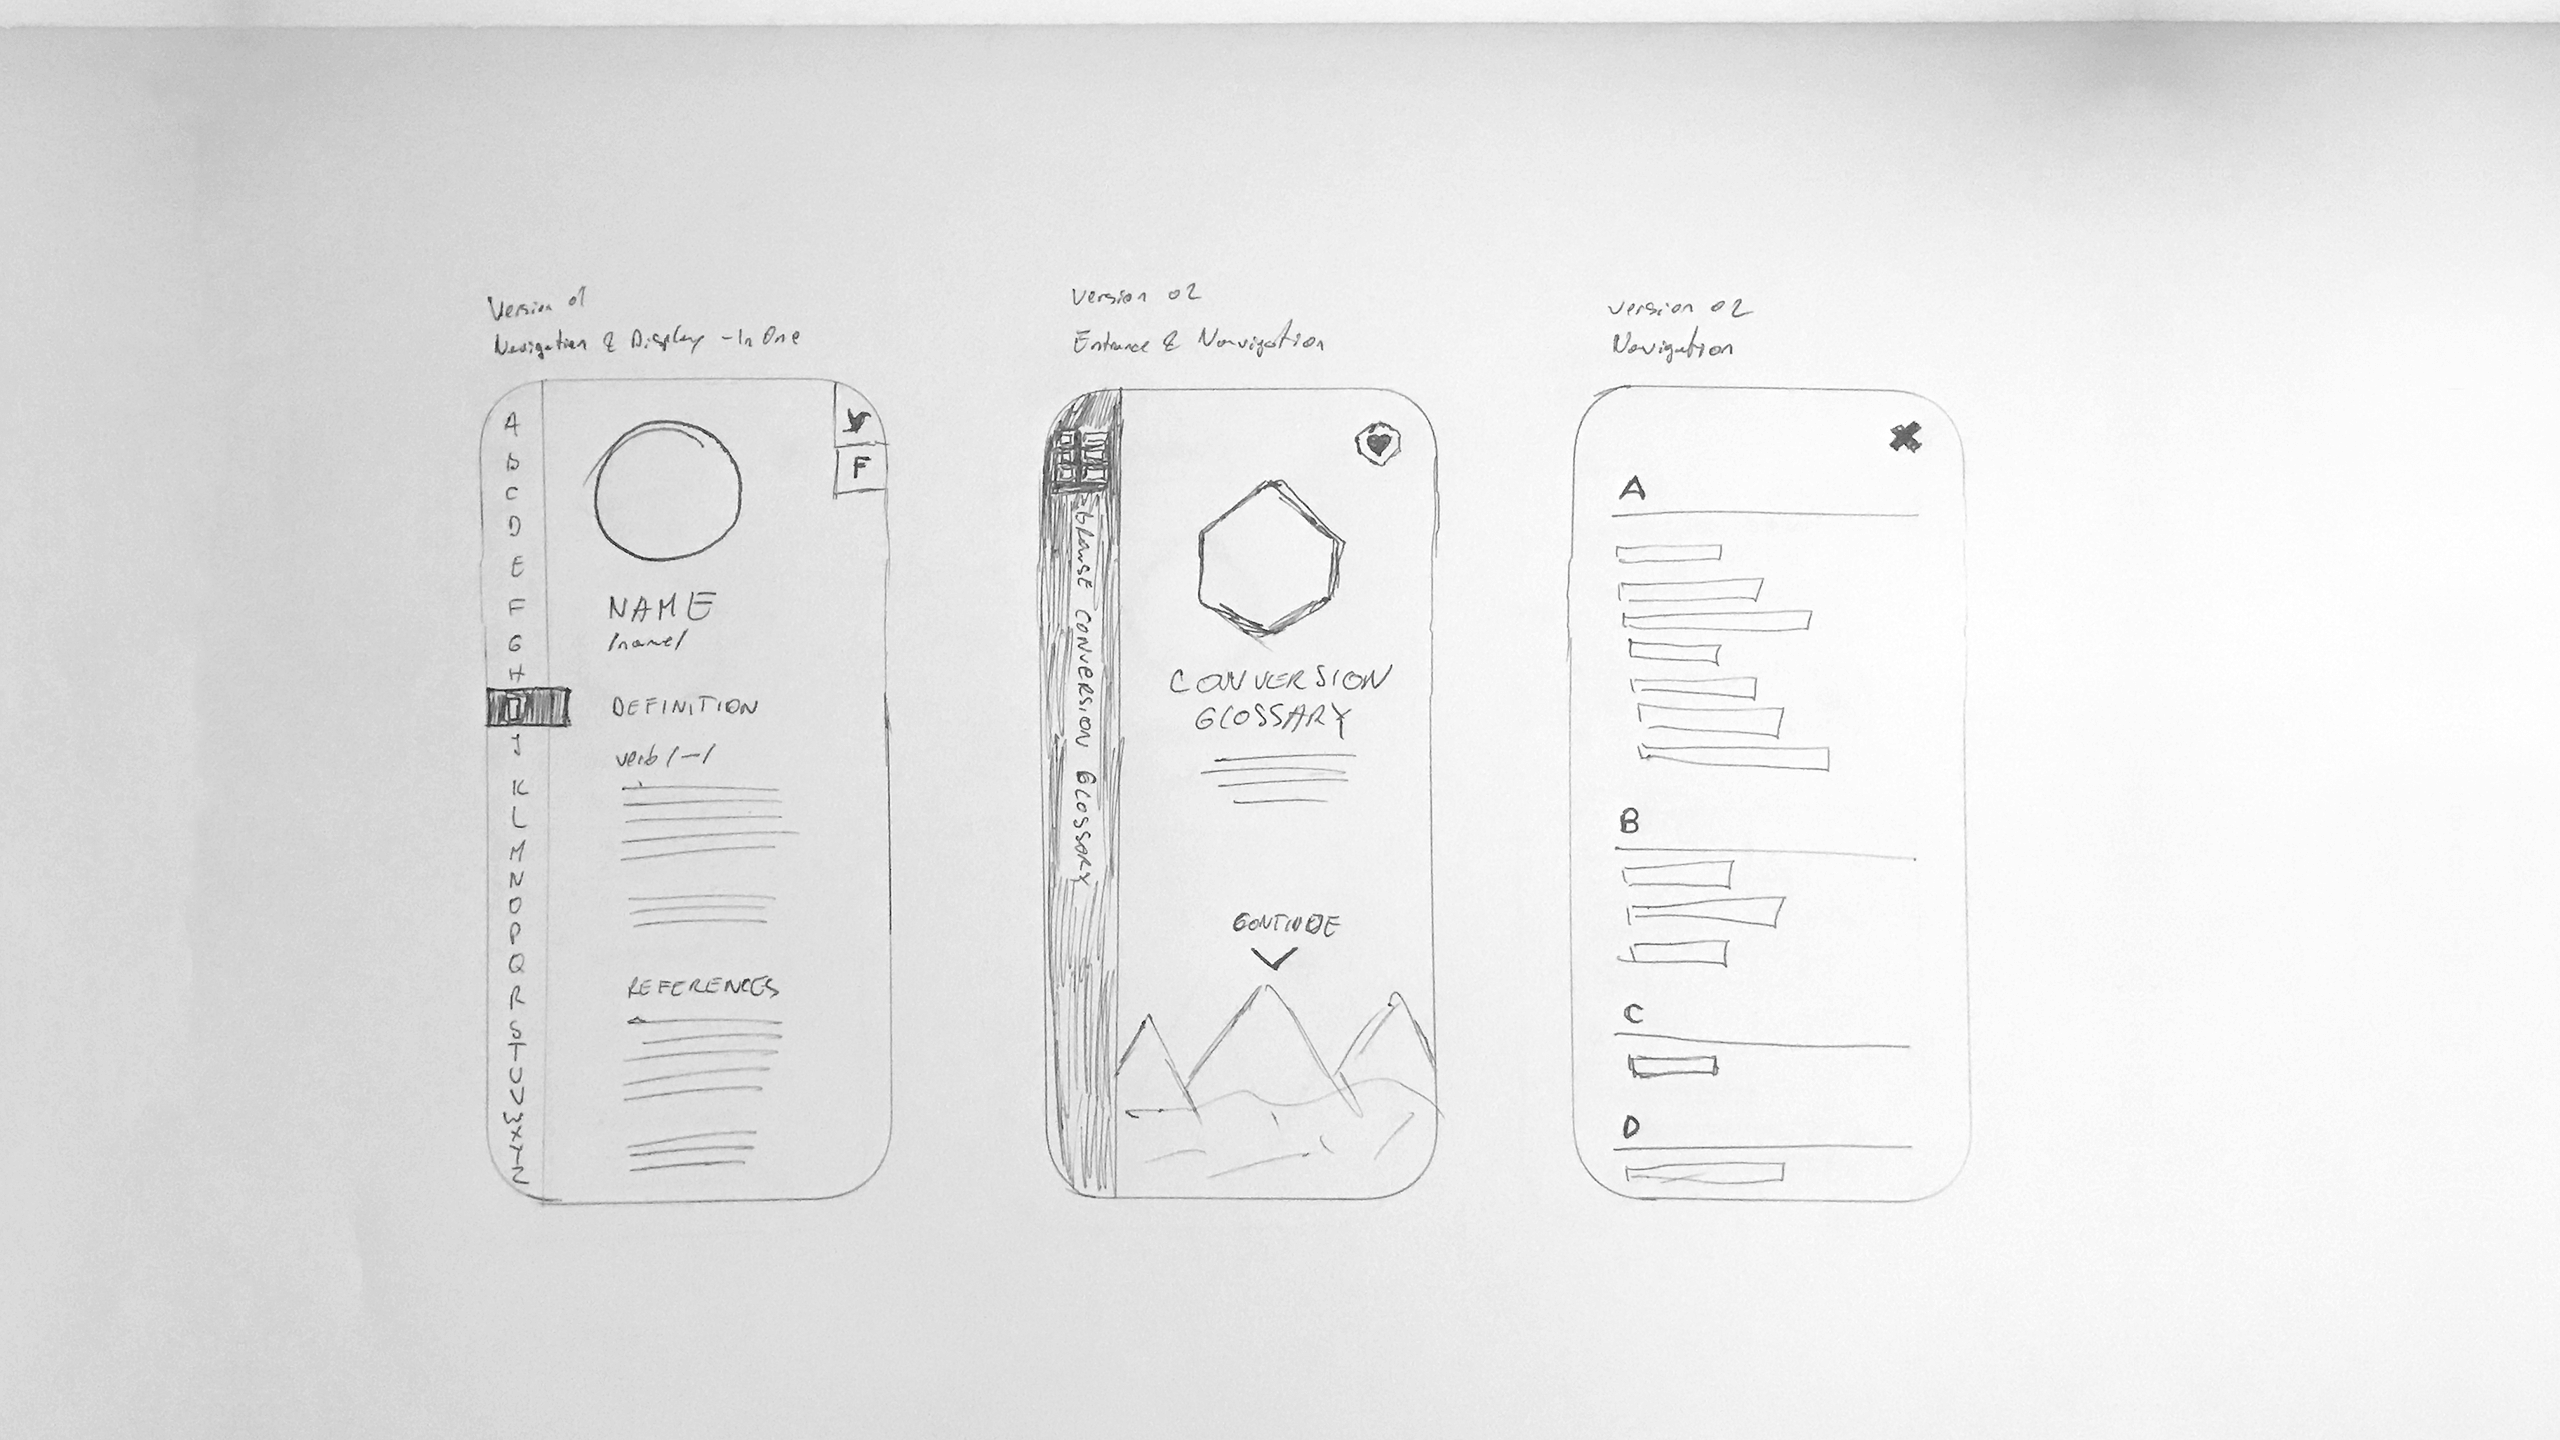 conversion-glossary-wireframe-sketches-01